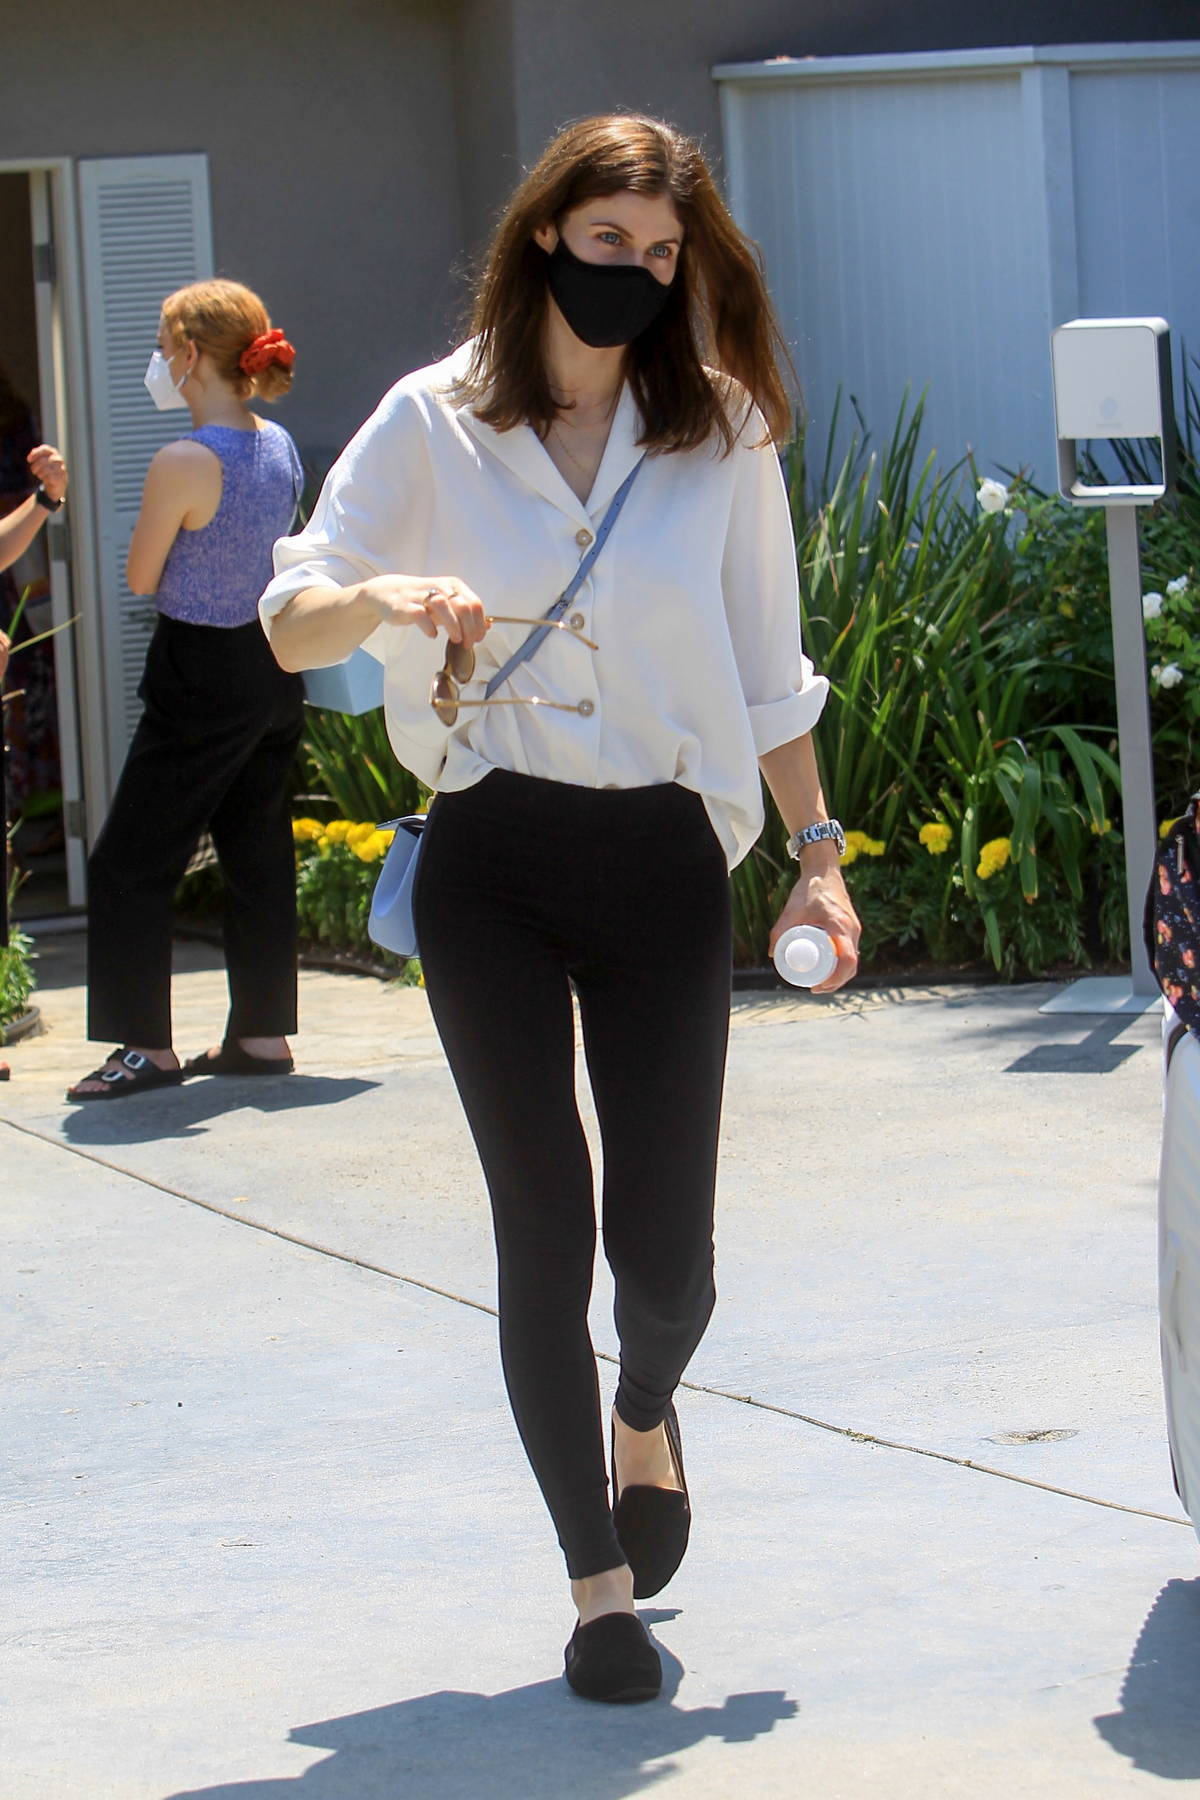 Alexandra Daddario attends the Day Of Indulgence event in Brentwood, California